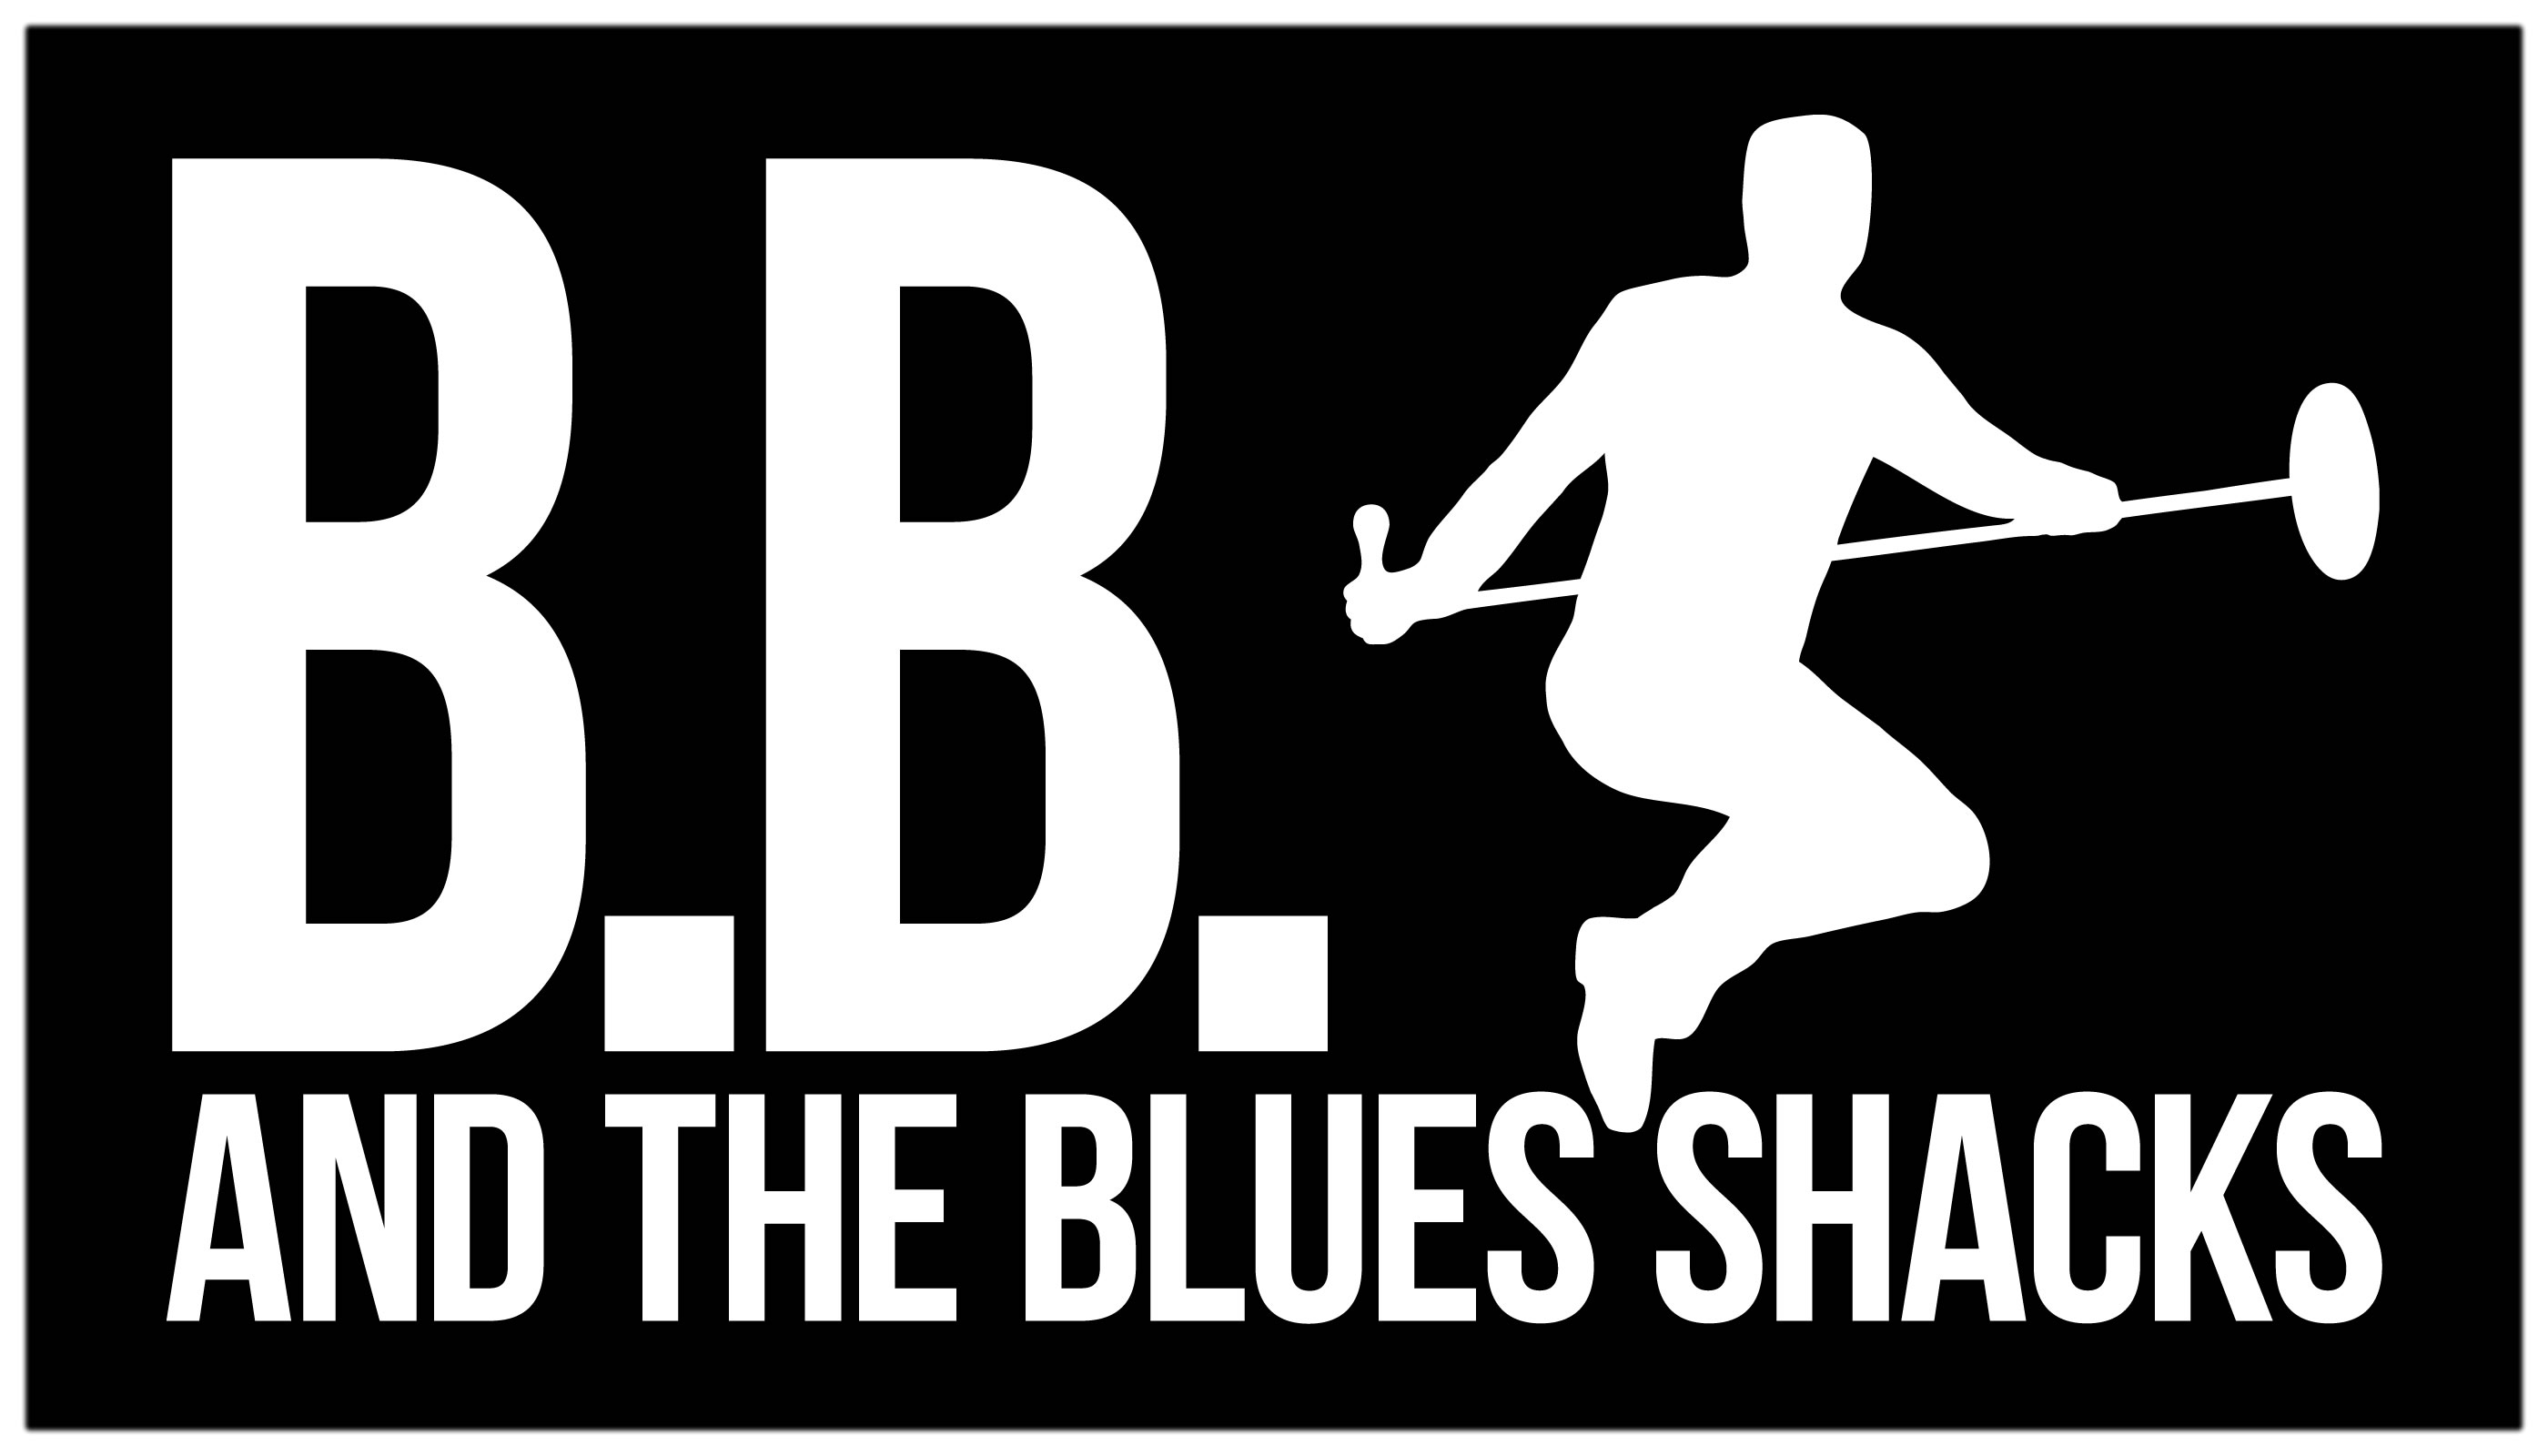 Open Air B.B. & The Blues Shacks auf dem Warnecke Hof